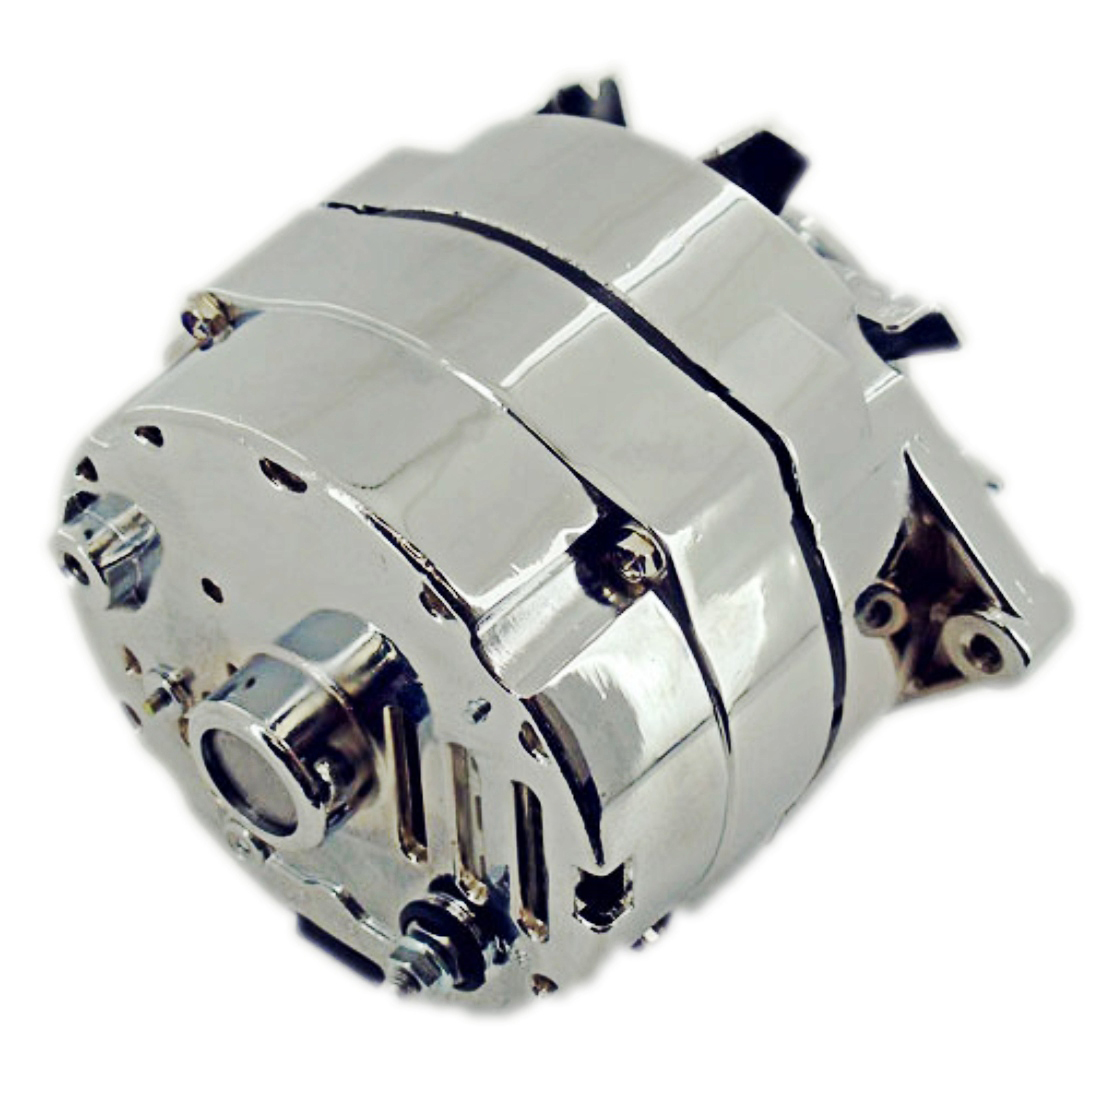 For Chevy SBC 350 120 Amp 1 Wire/ 3 Wire Alternator & LWP Aluminum ...